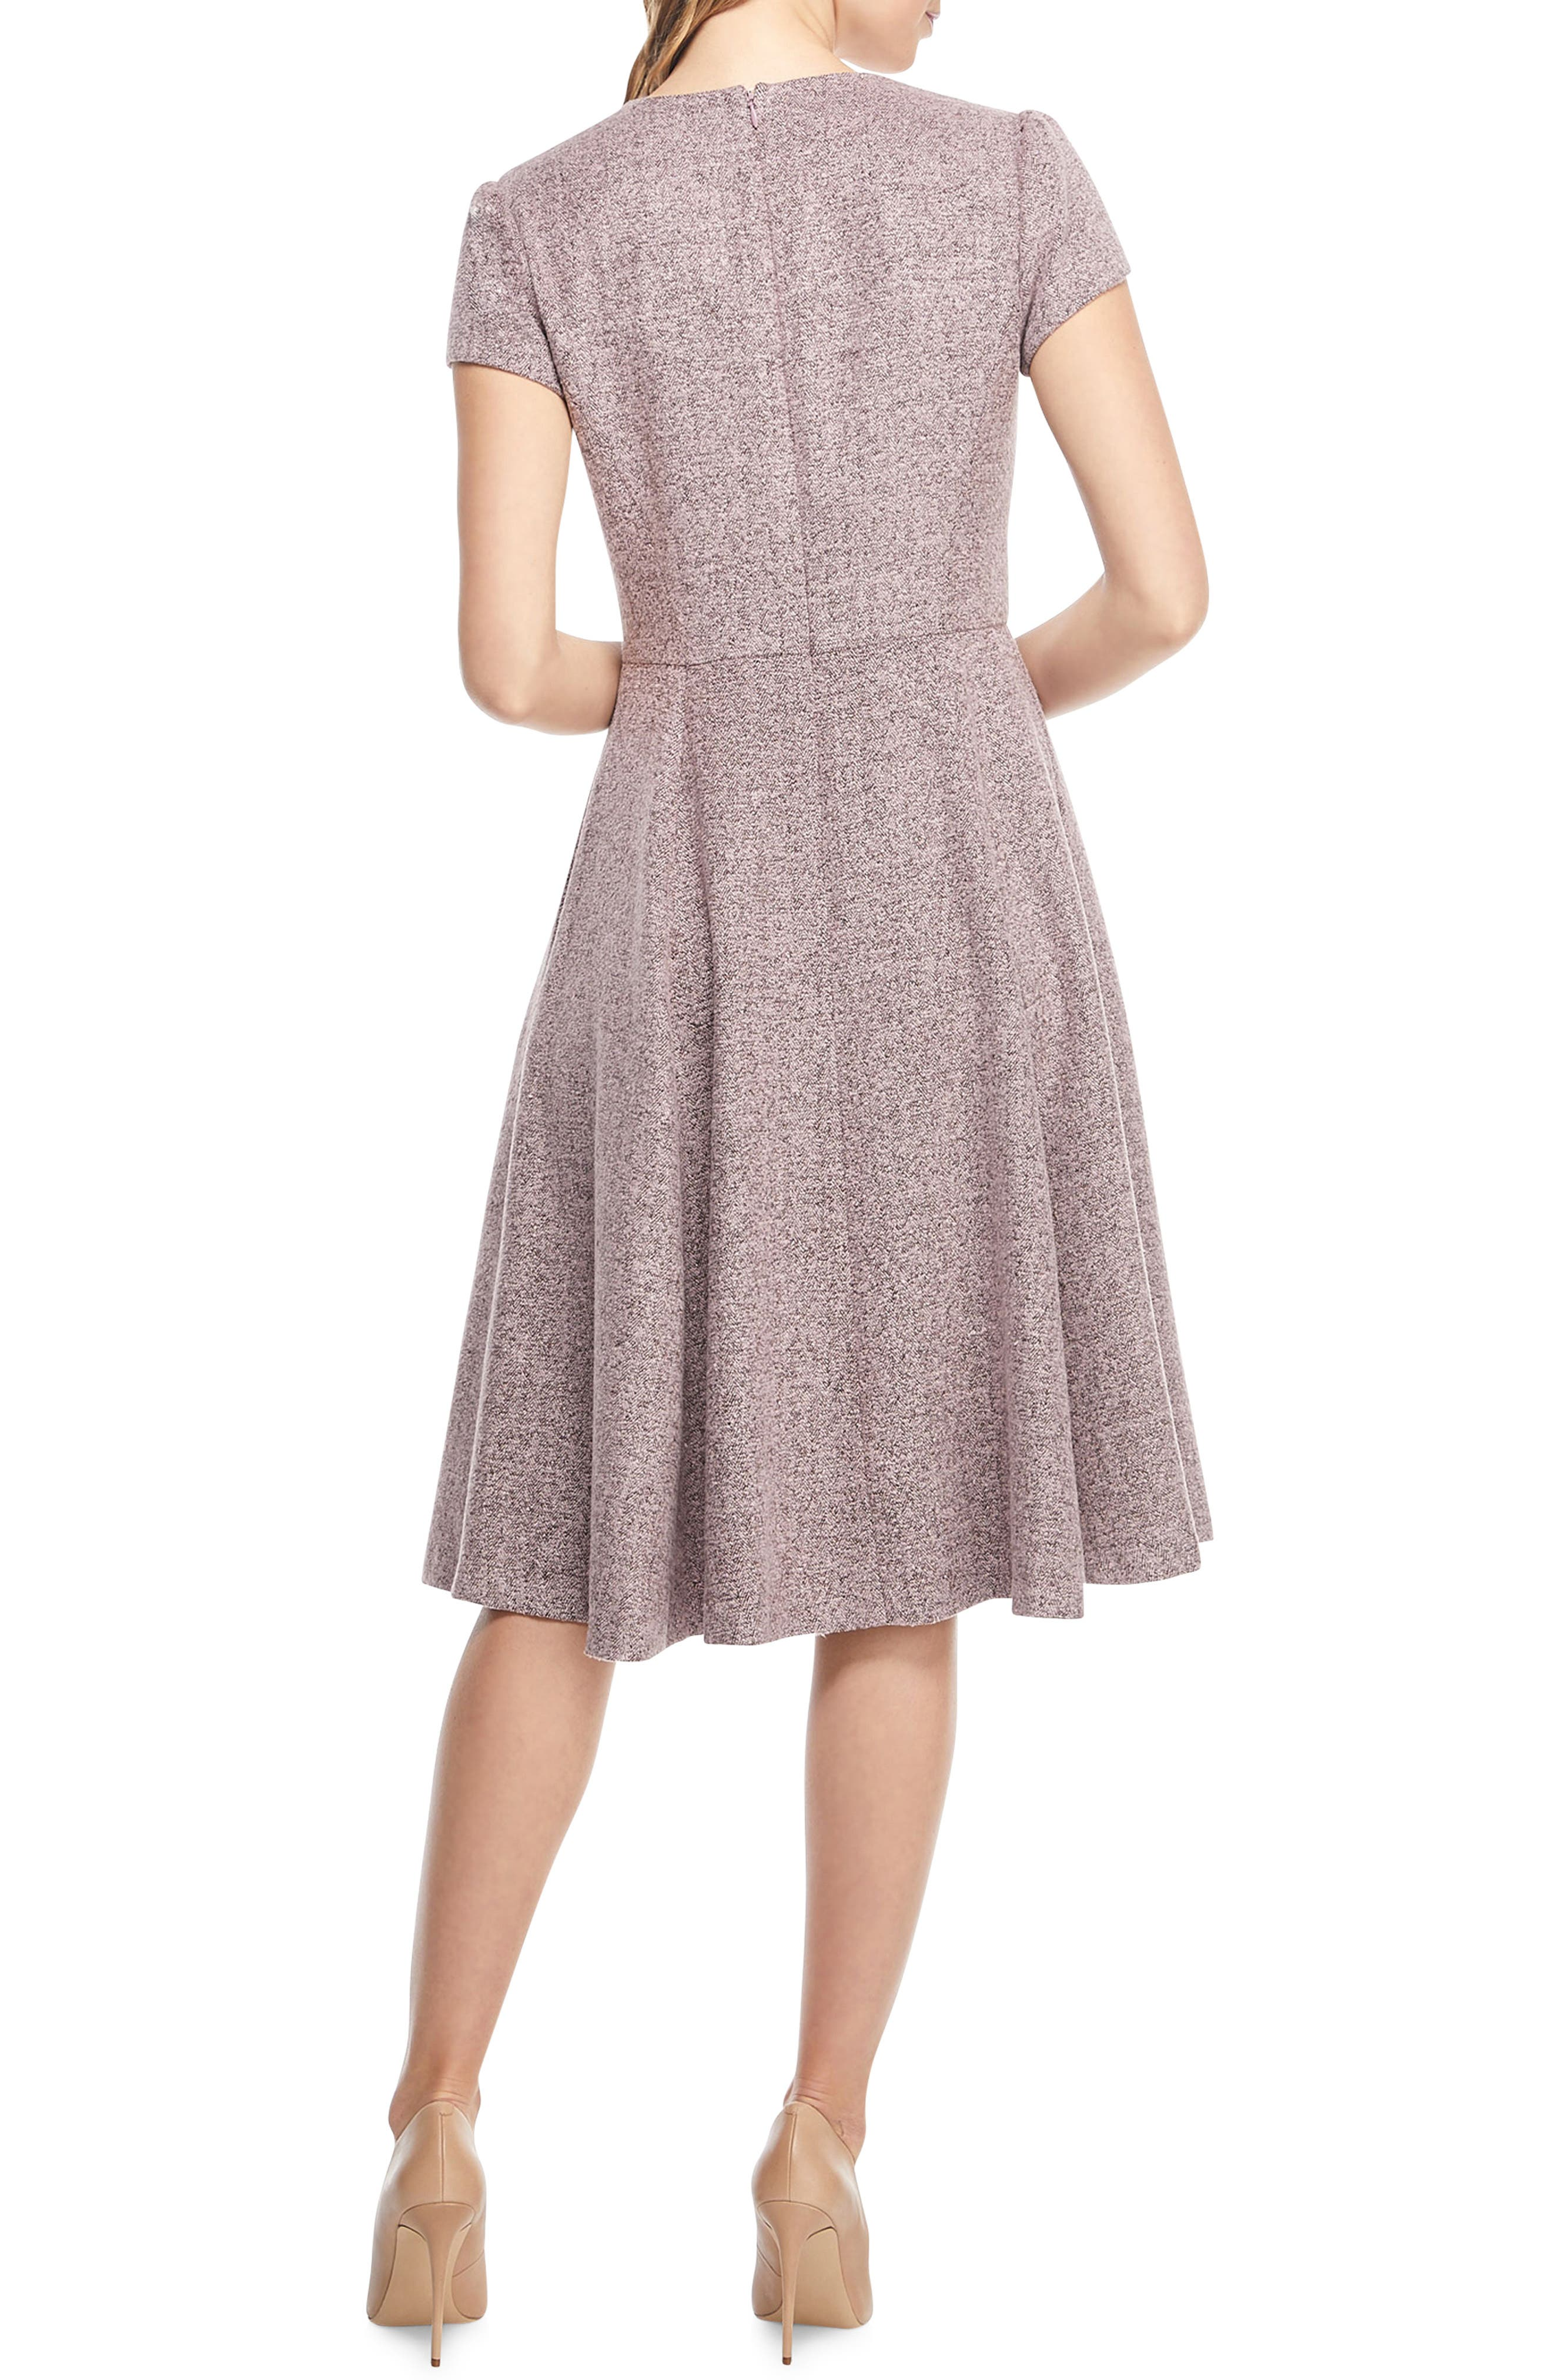 Agatha Dainty Tweed Dress,                             Alternate thumbnail 2, color,                             650